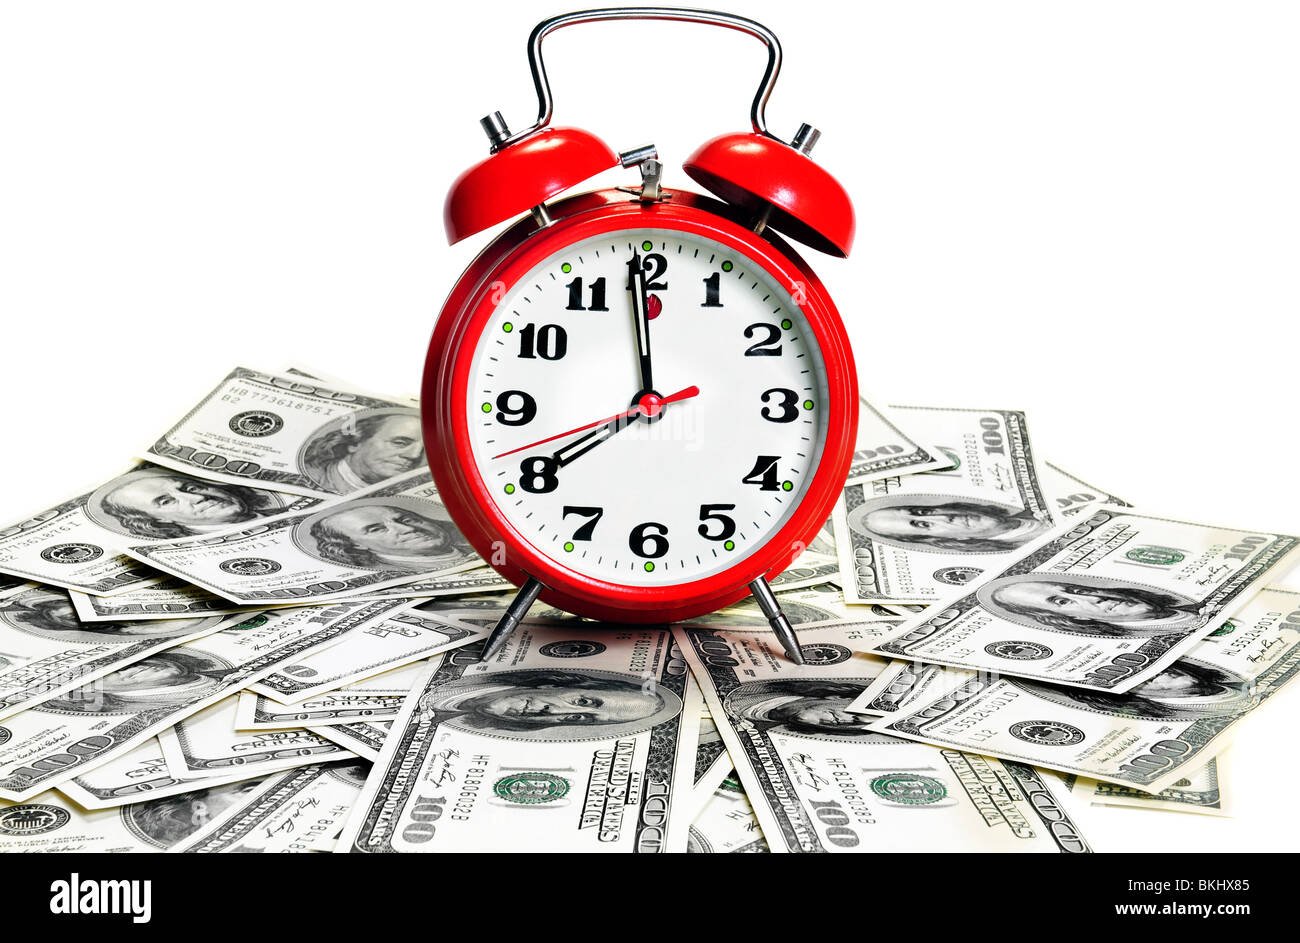 'Time is money' concept - classic alarm clock over dollars. High contrast - Stock Image